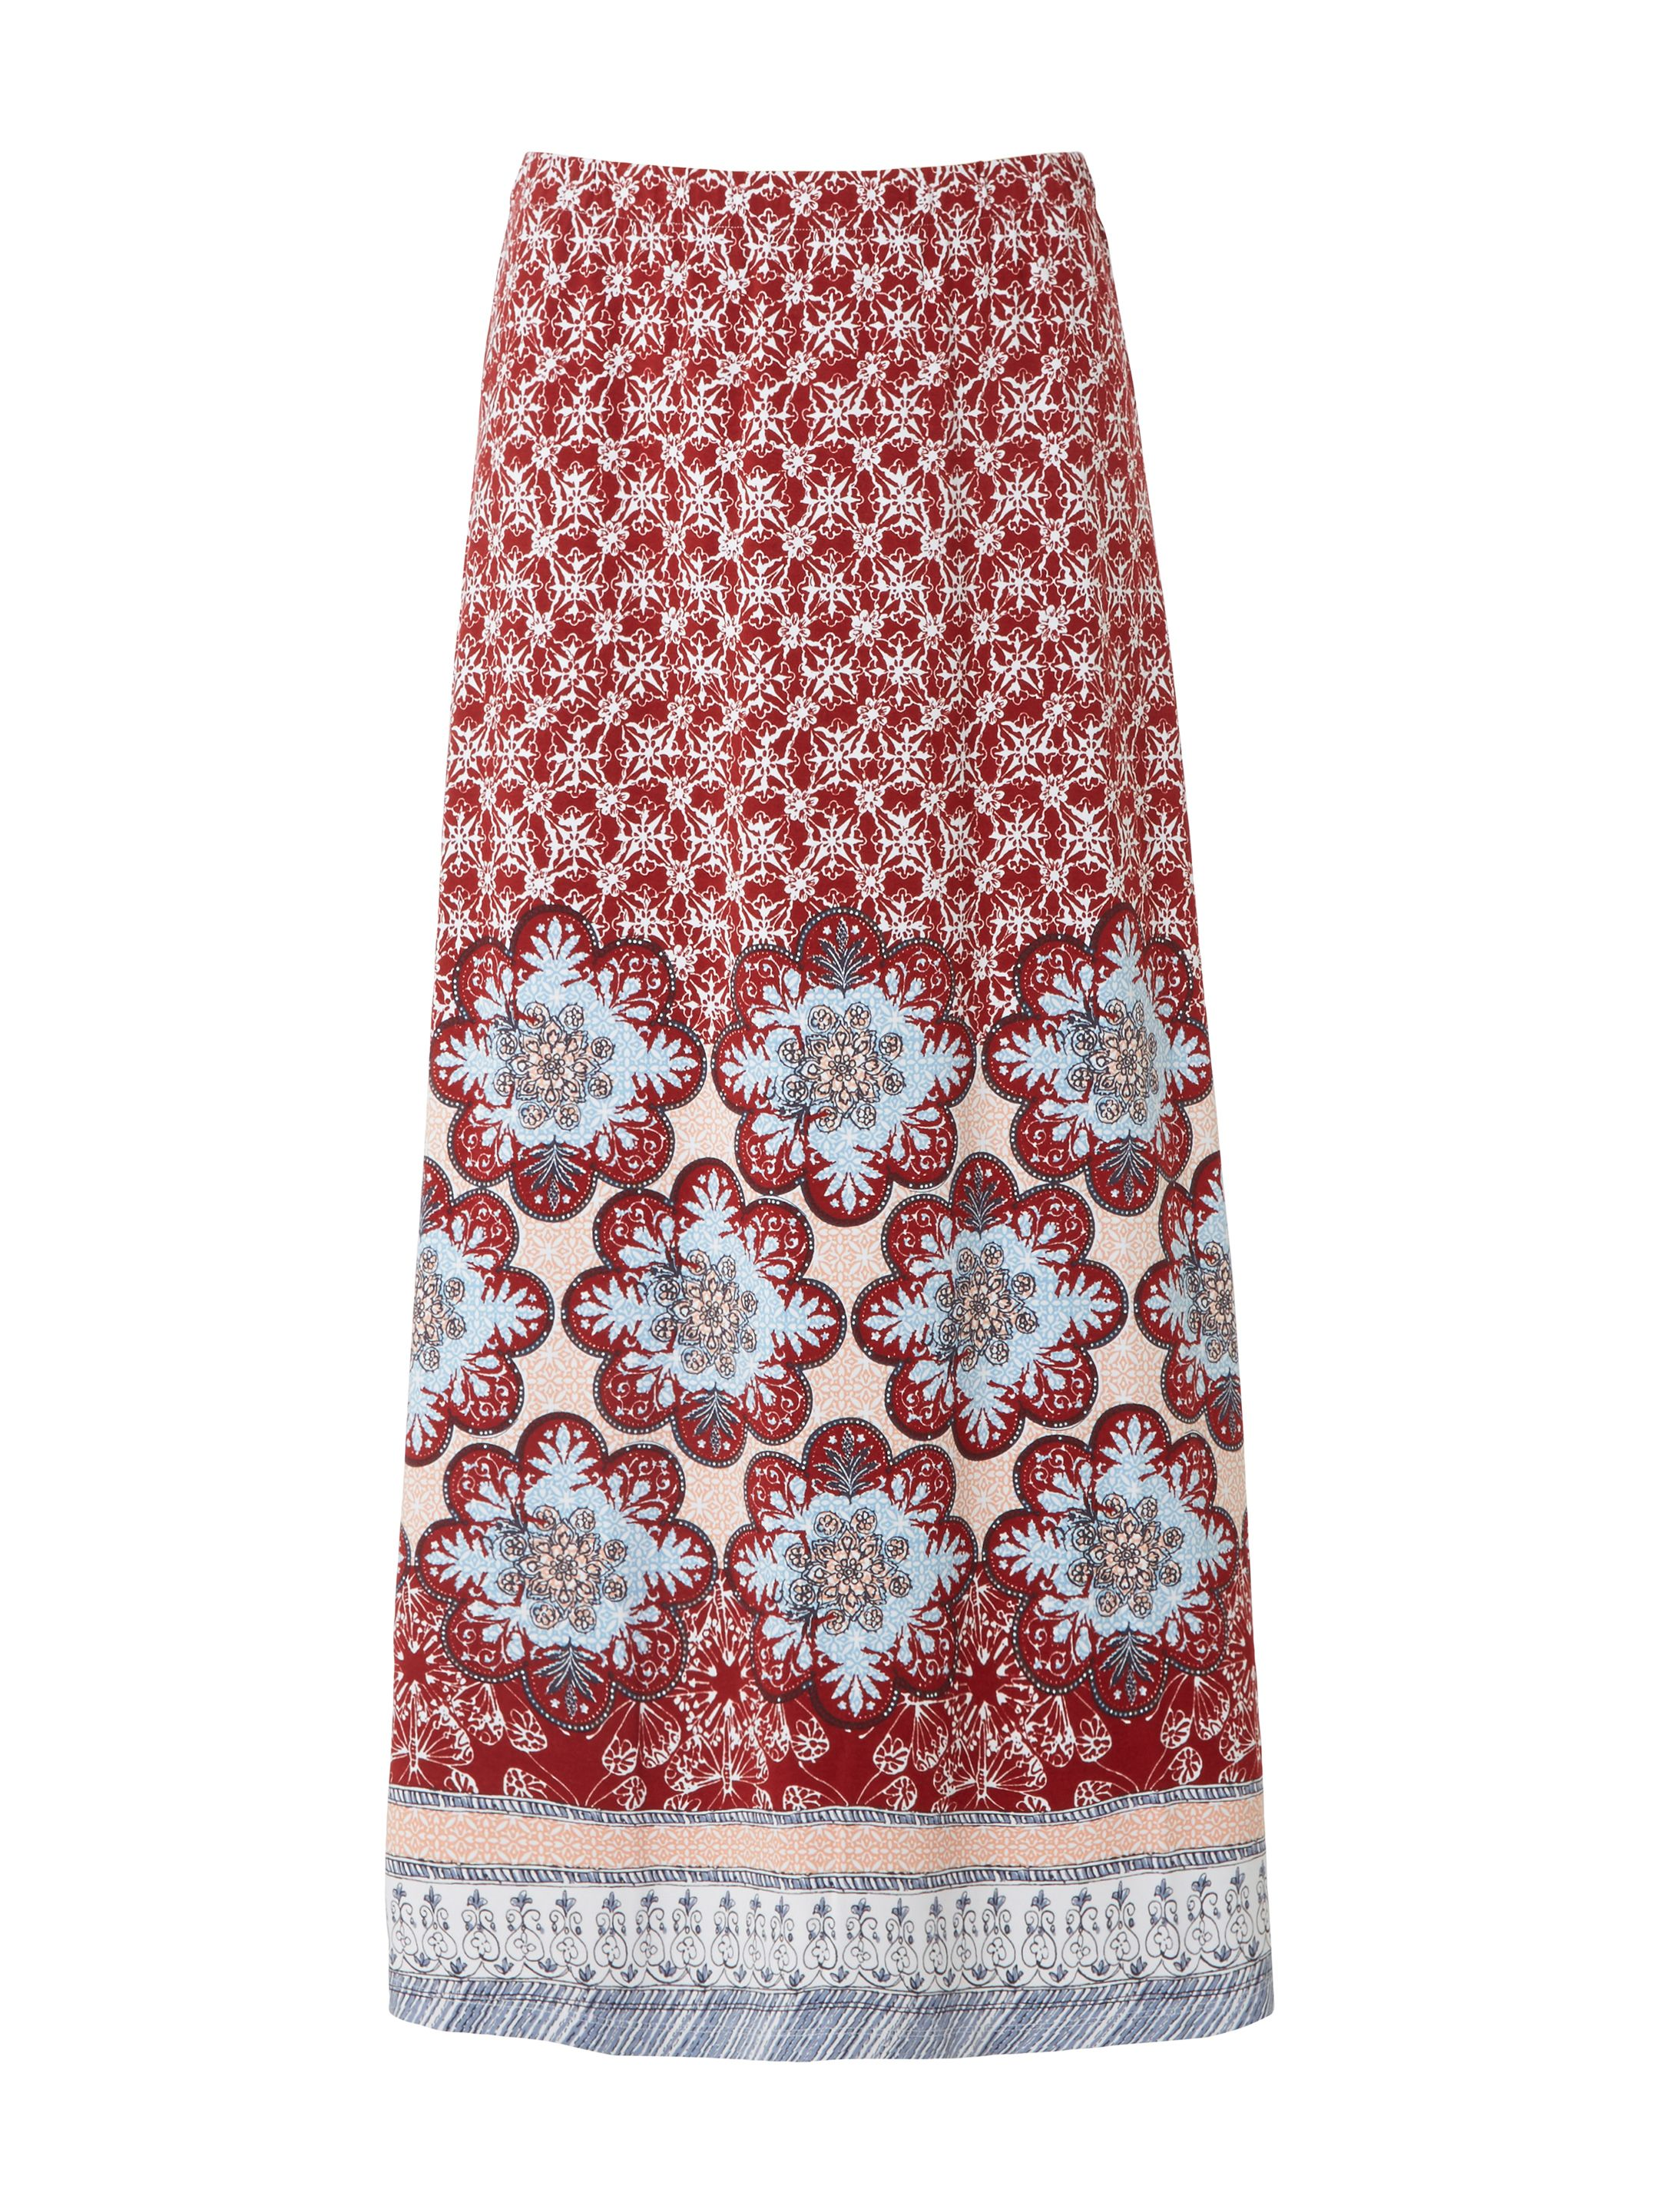 White Stuff Sundance Maxi Jersey Skirt, Red